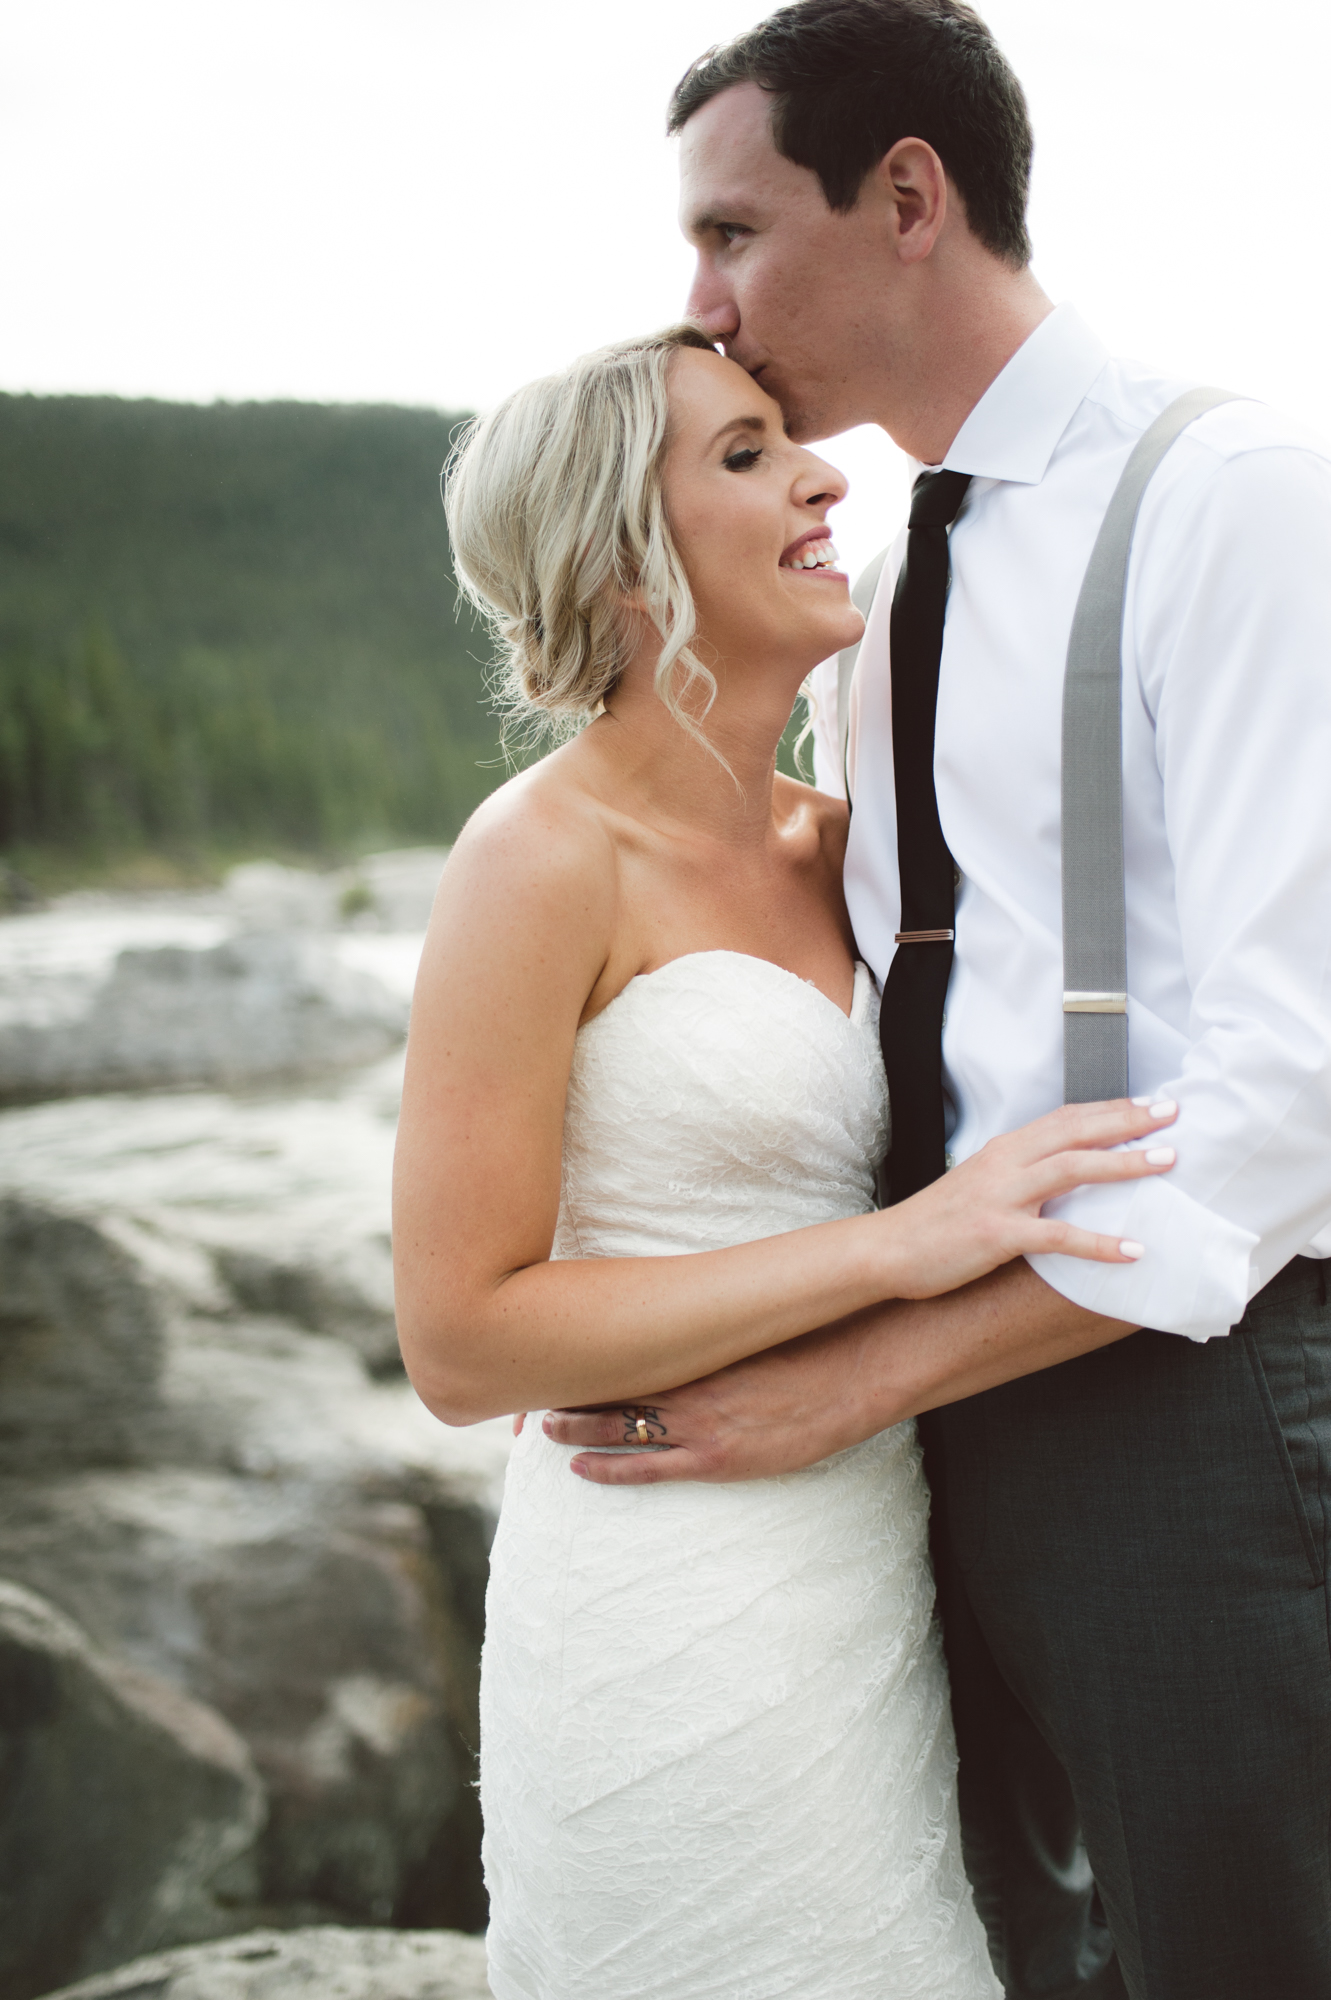 Rocky Mountain Banff Calgary Alberta Wedding-Jessika Hunter Photo-77.JPG